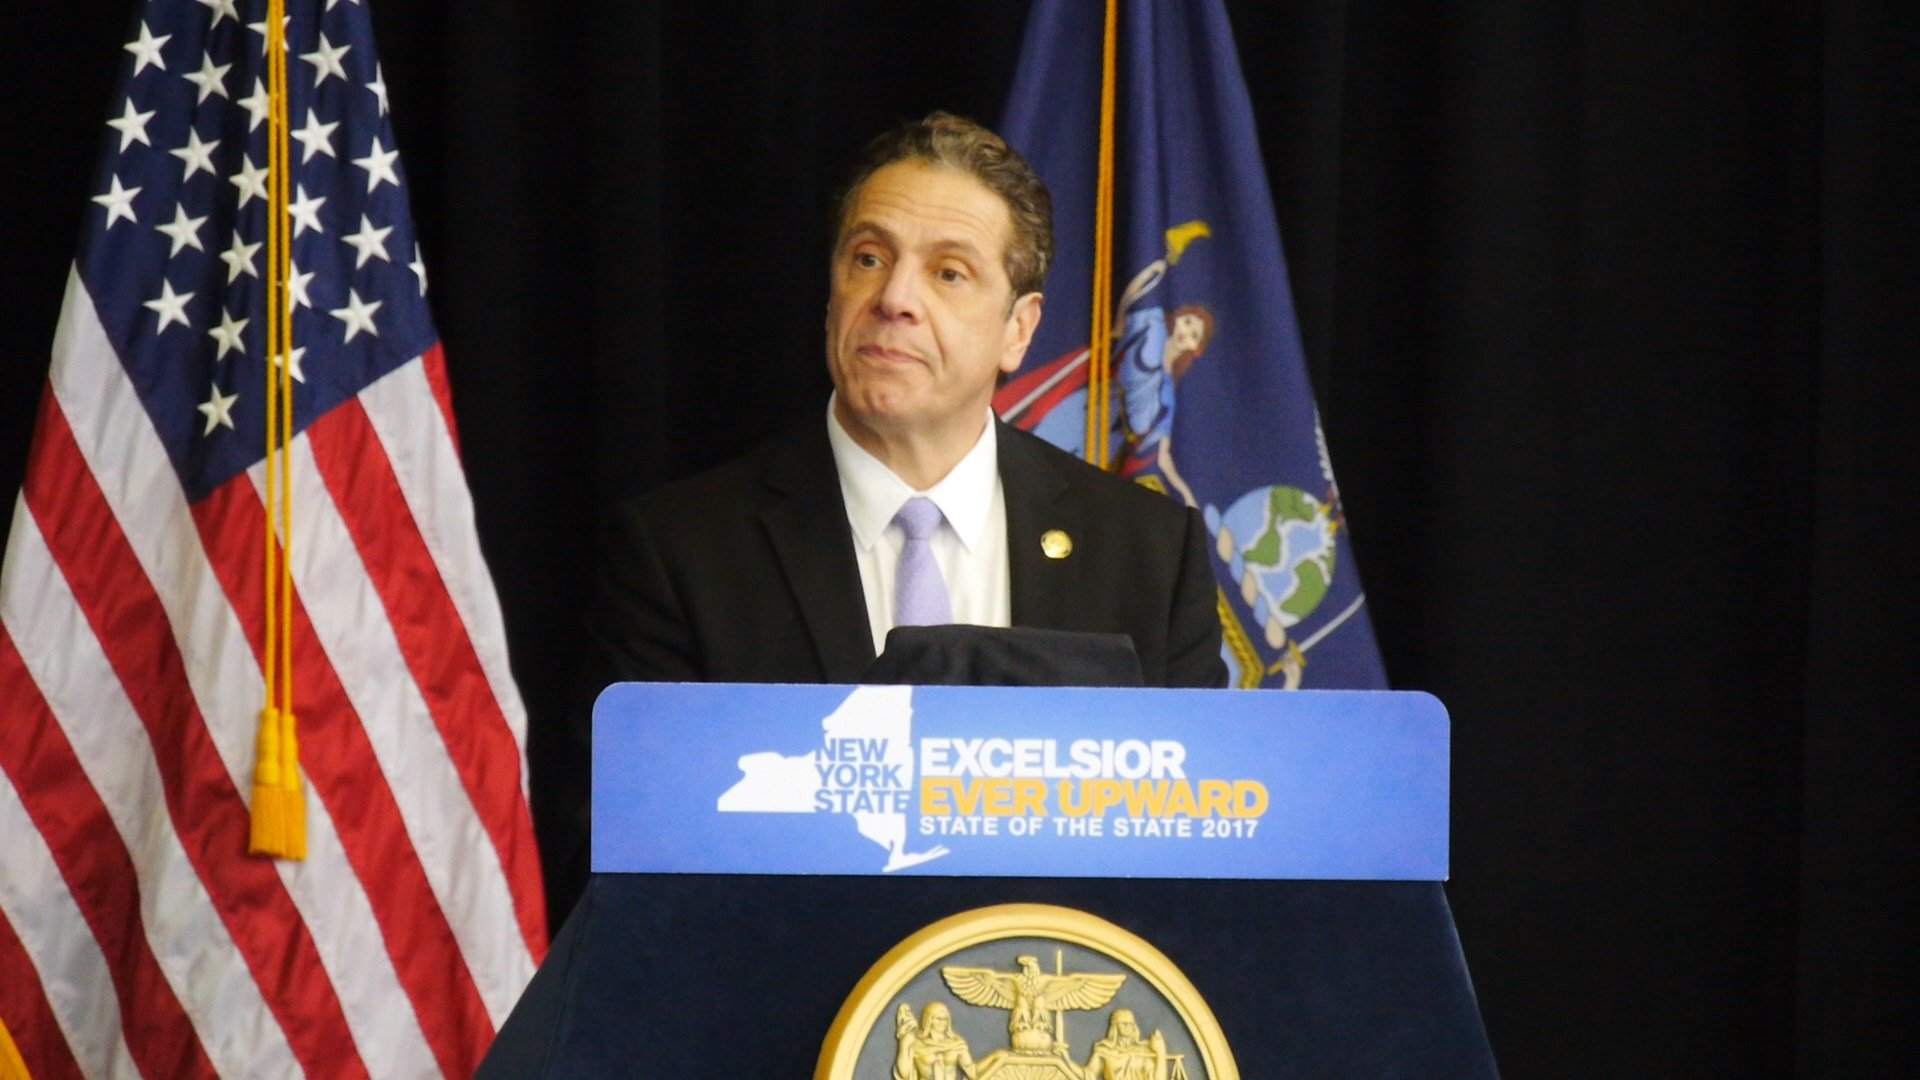 Cuomo, Pelosi urge defeat of NY's GOP congress